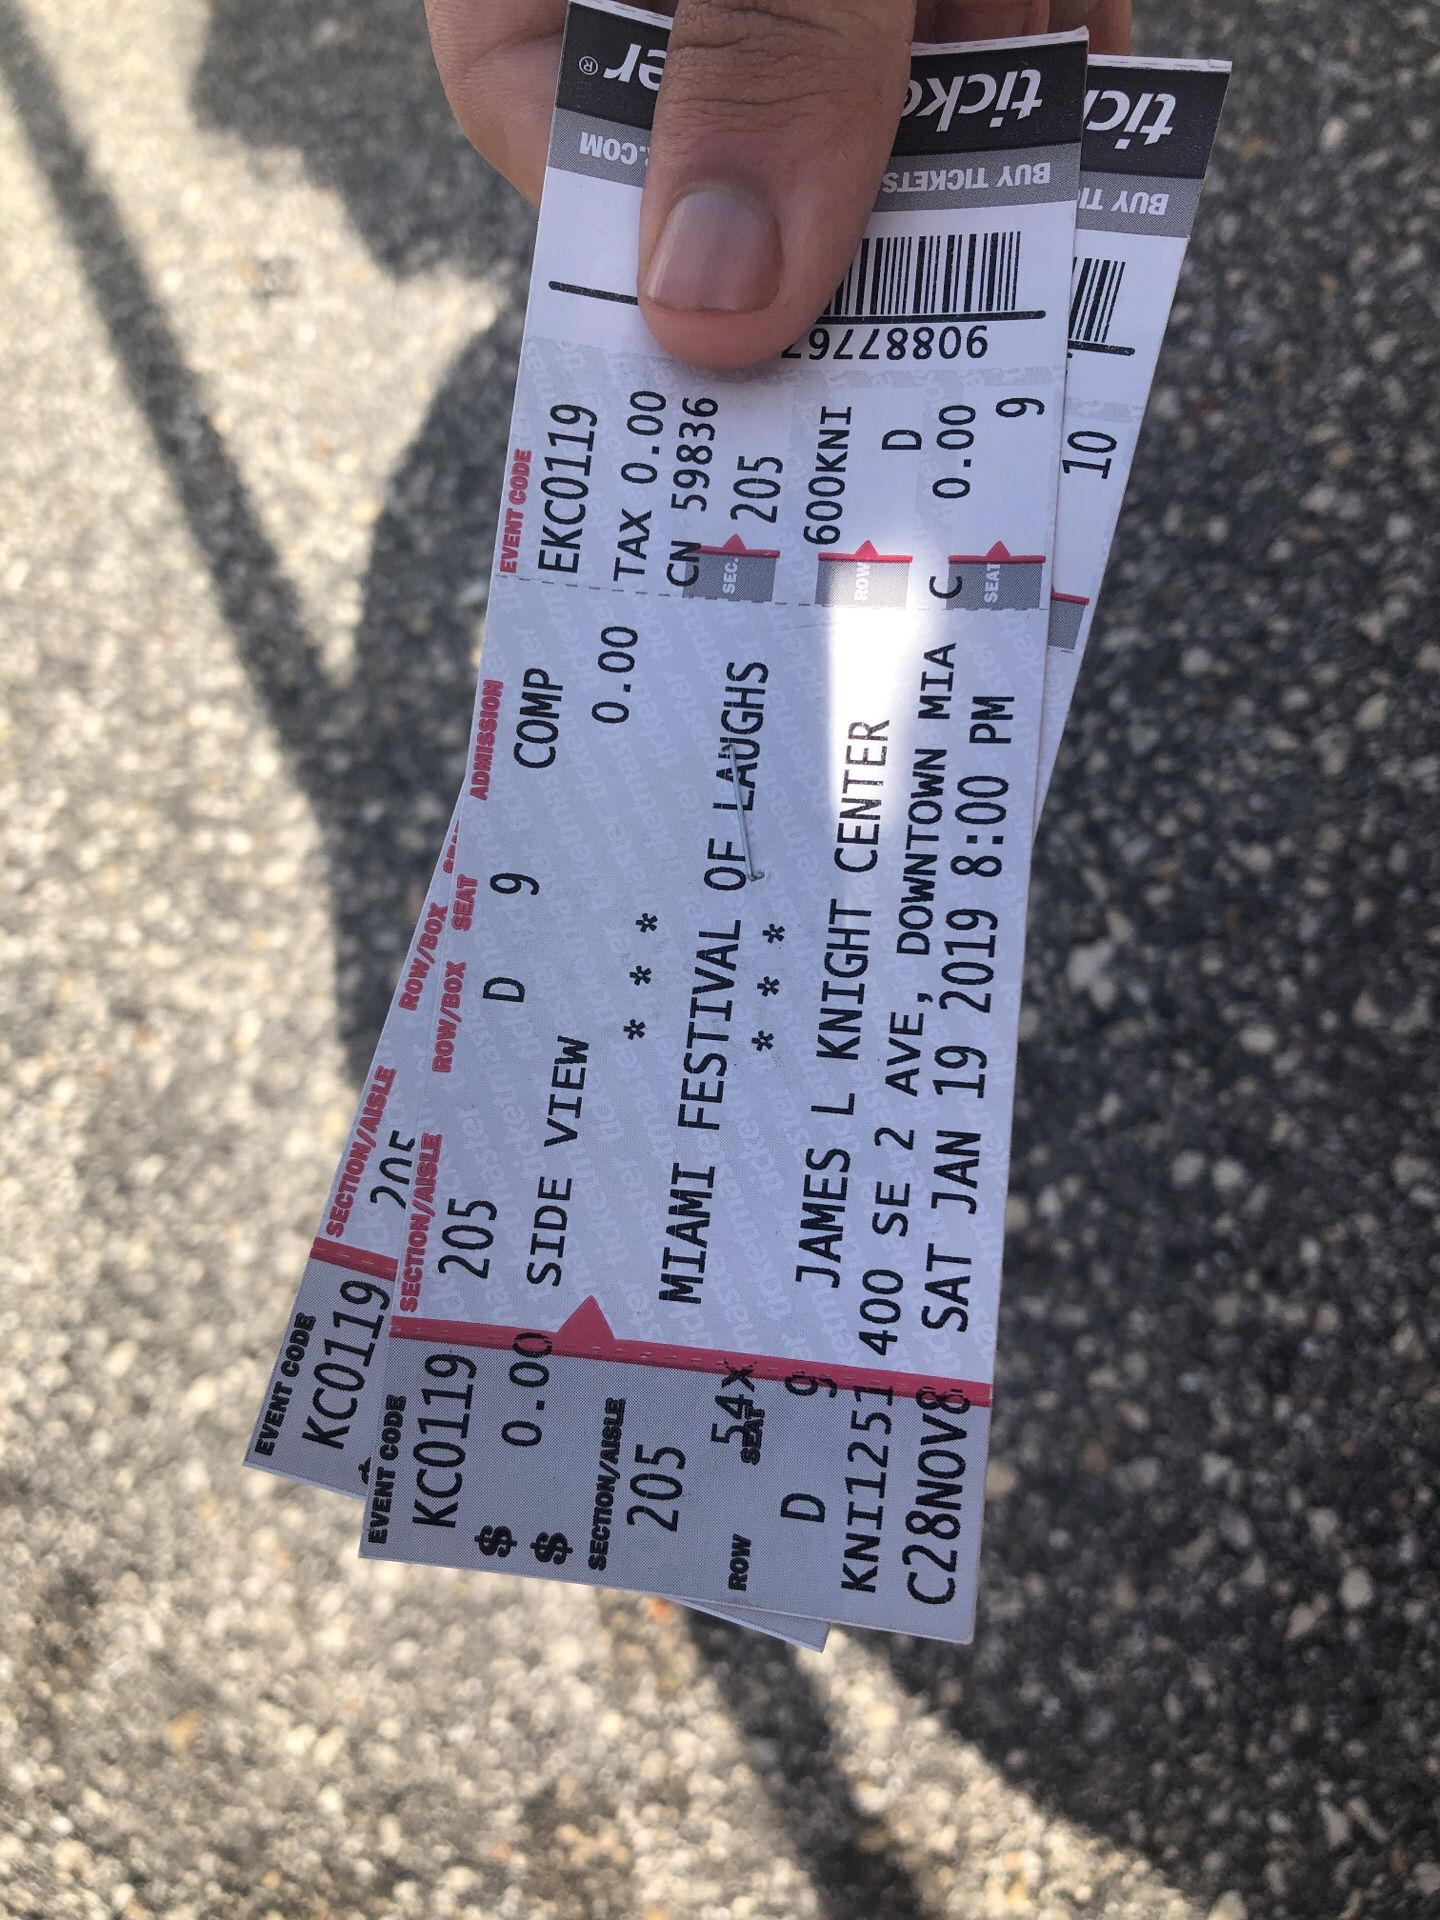 2 Tickets to see mike epps today at 8